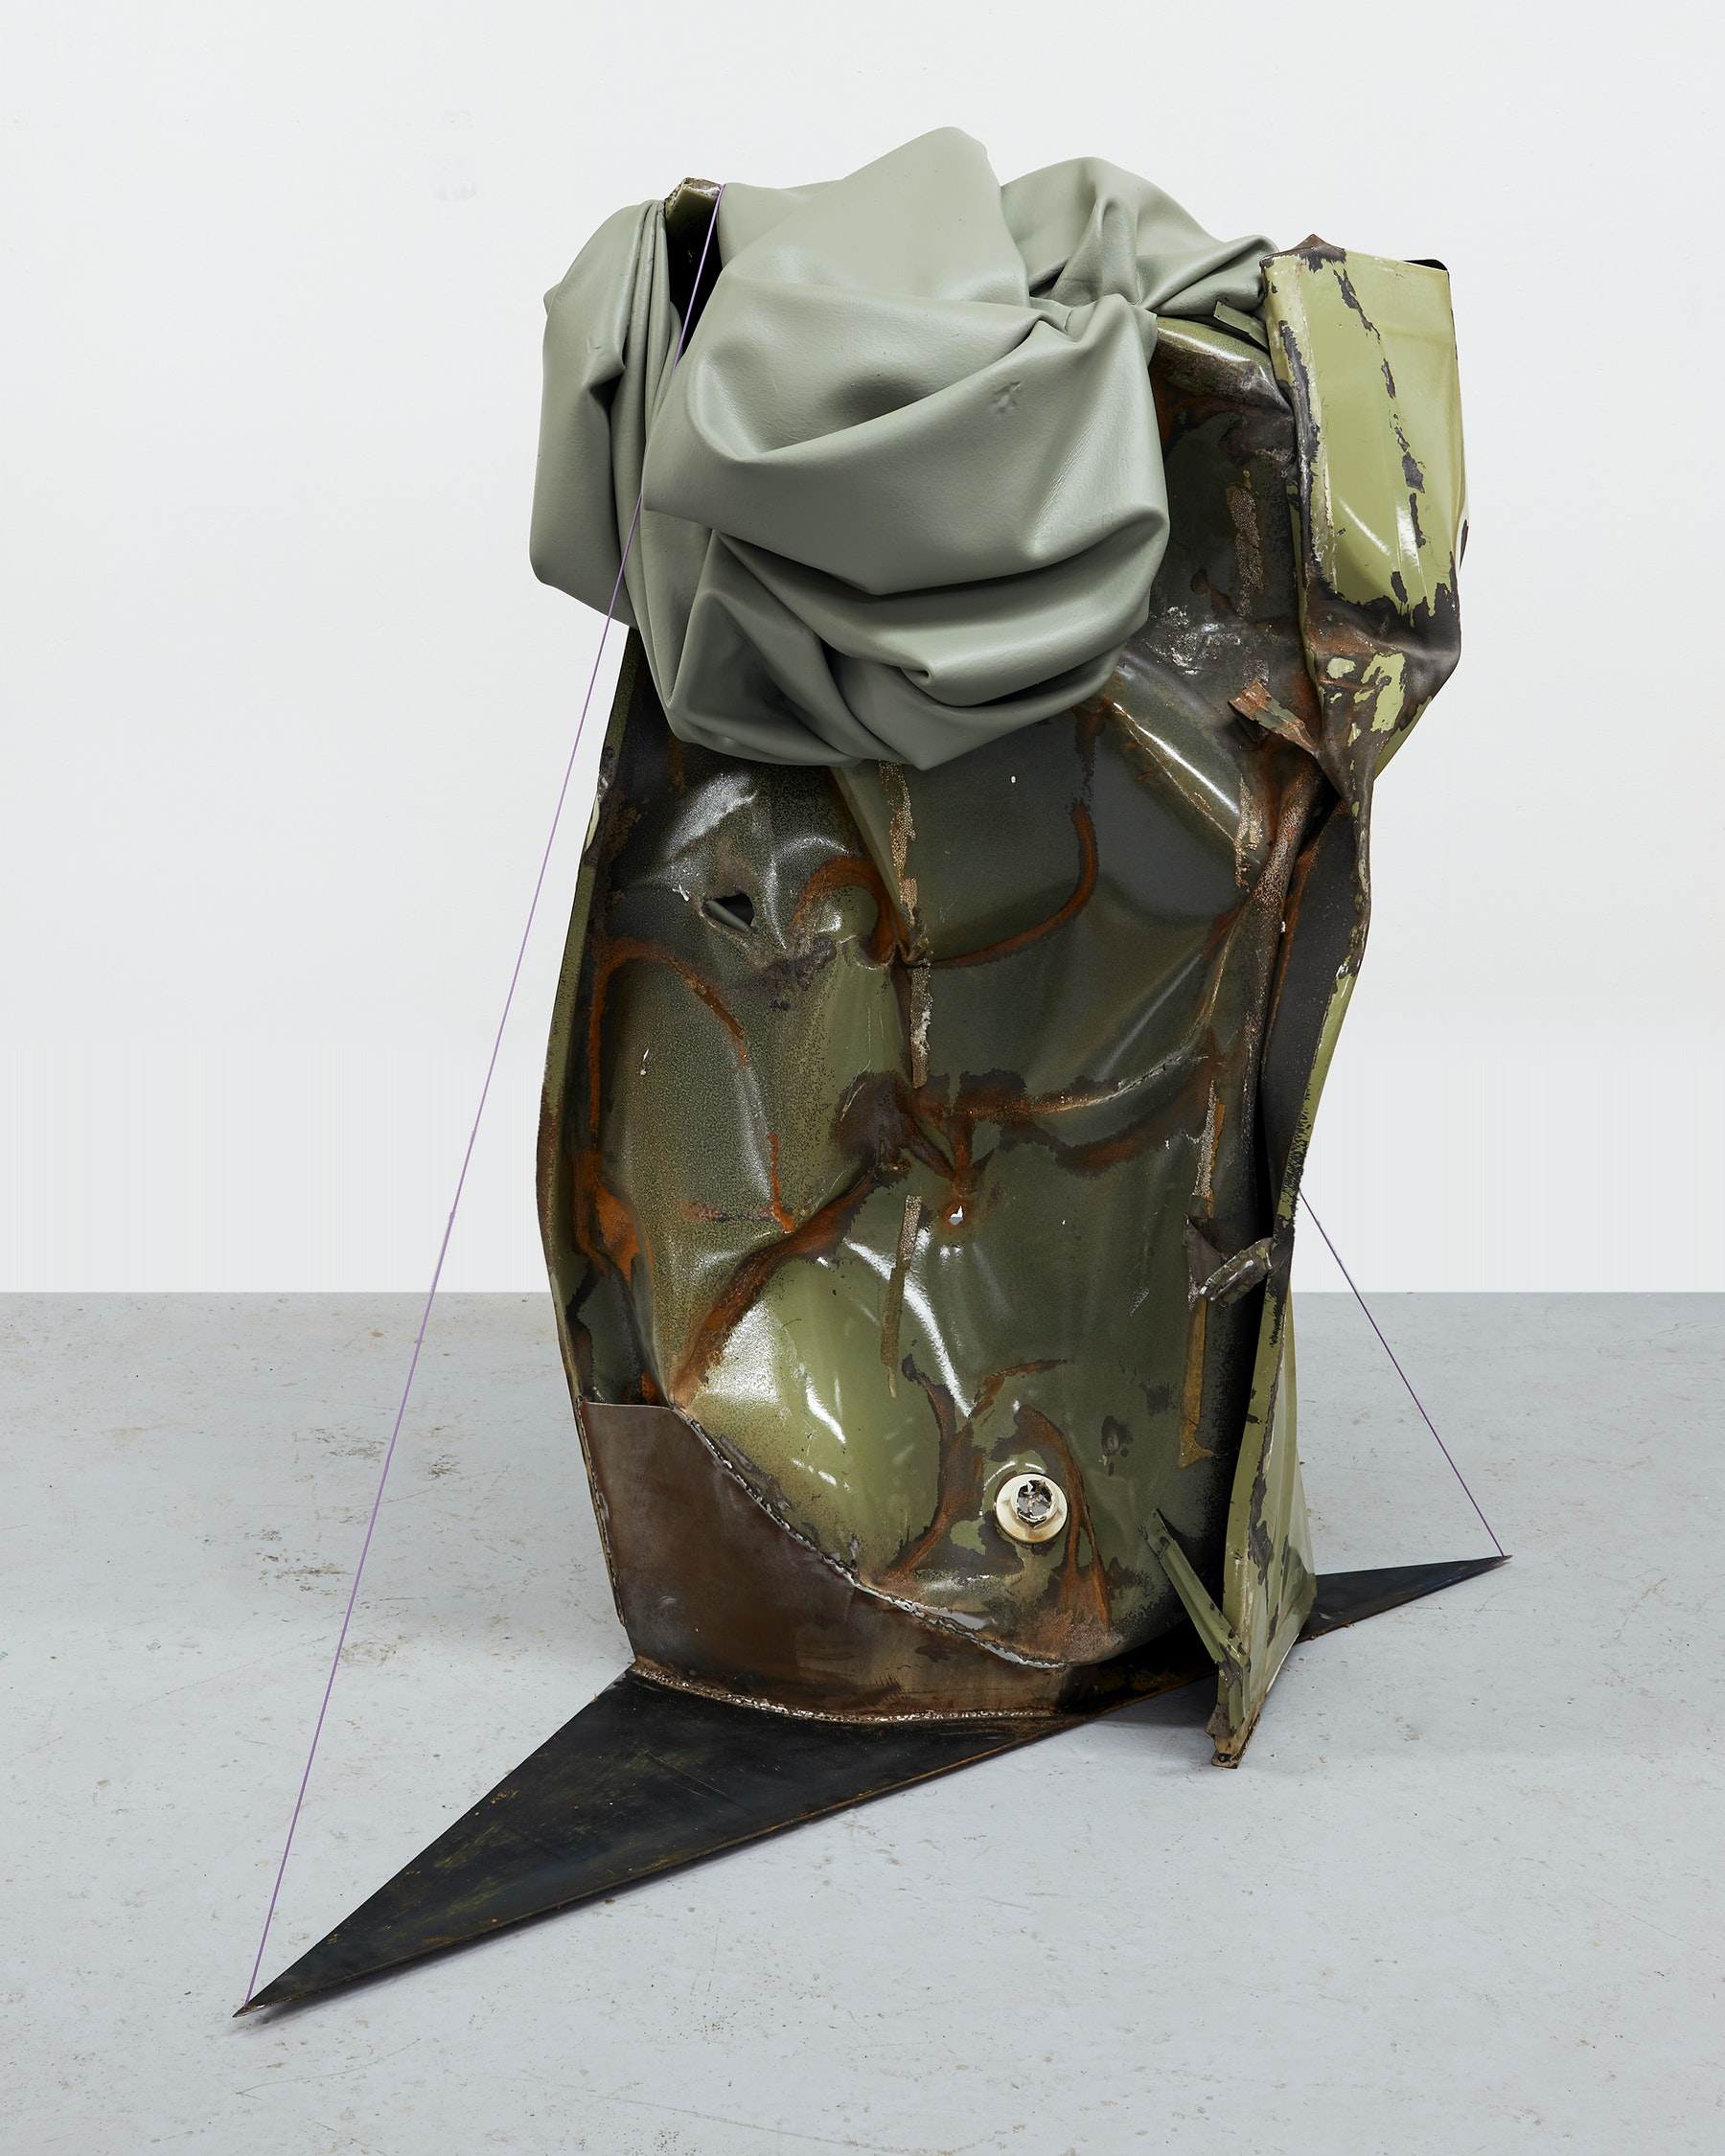 """Kennedy Yanko """"The Cold on My Back,"""" 2021 Paint skin, metal, steel cable 61"""" x 64"""" x 35"""" [HxWxD] (154.94 x 162.56 x 88.9 cm) Inventory #YAN1021 Courtesy of the artist and Vielmetter Los Angeles Photo credit: Martin Parsekian"""